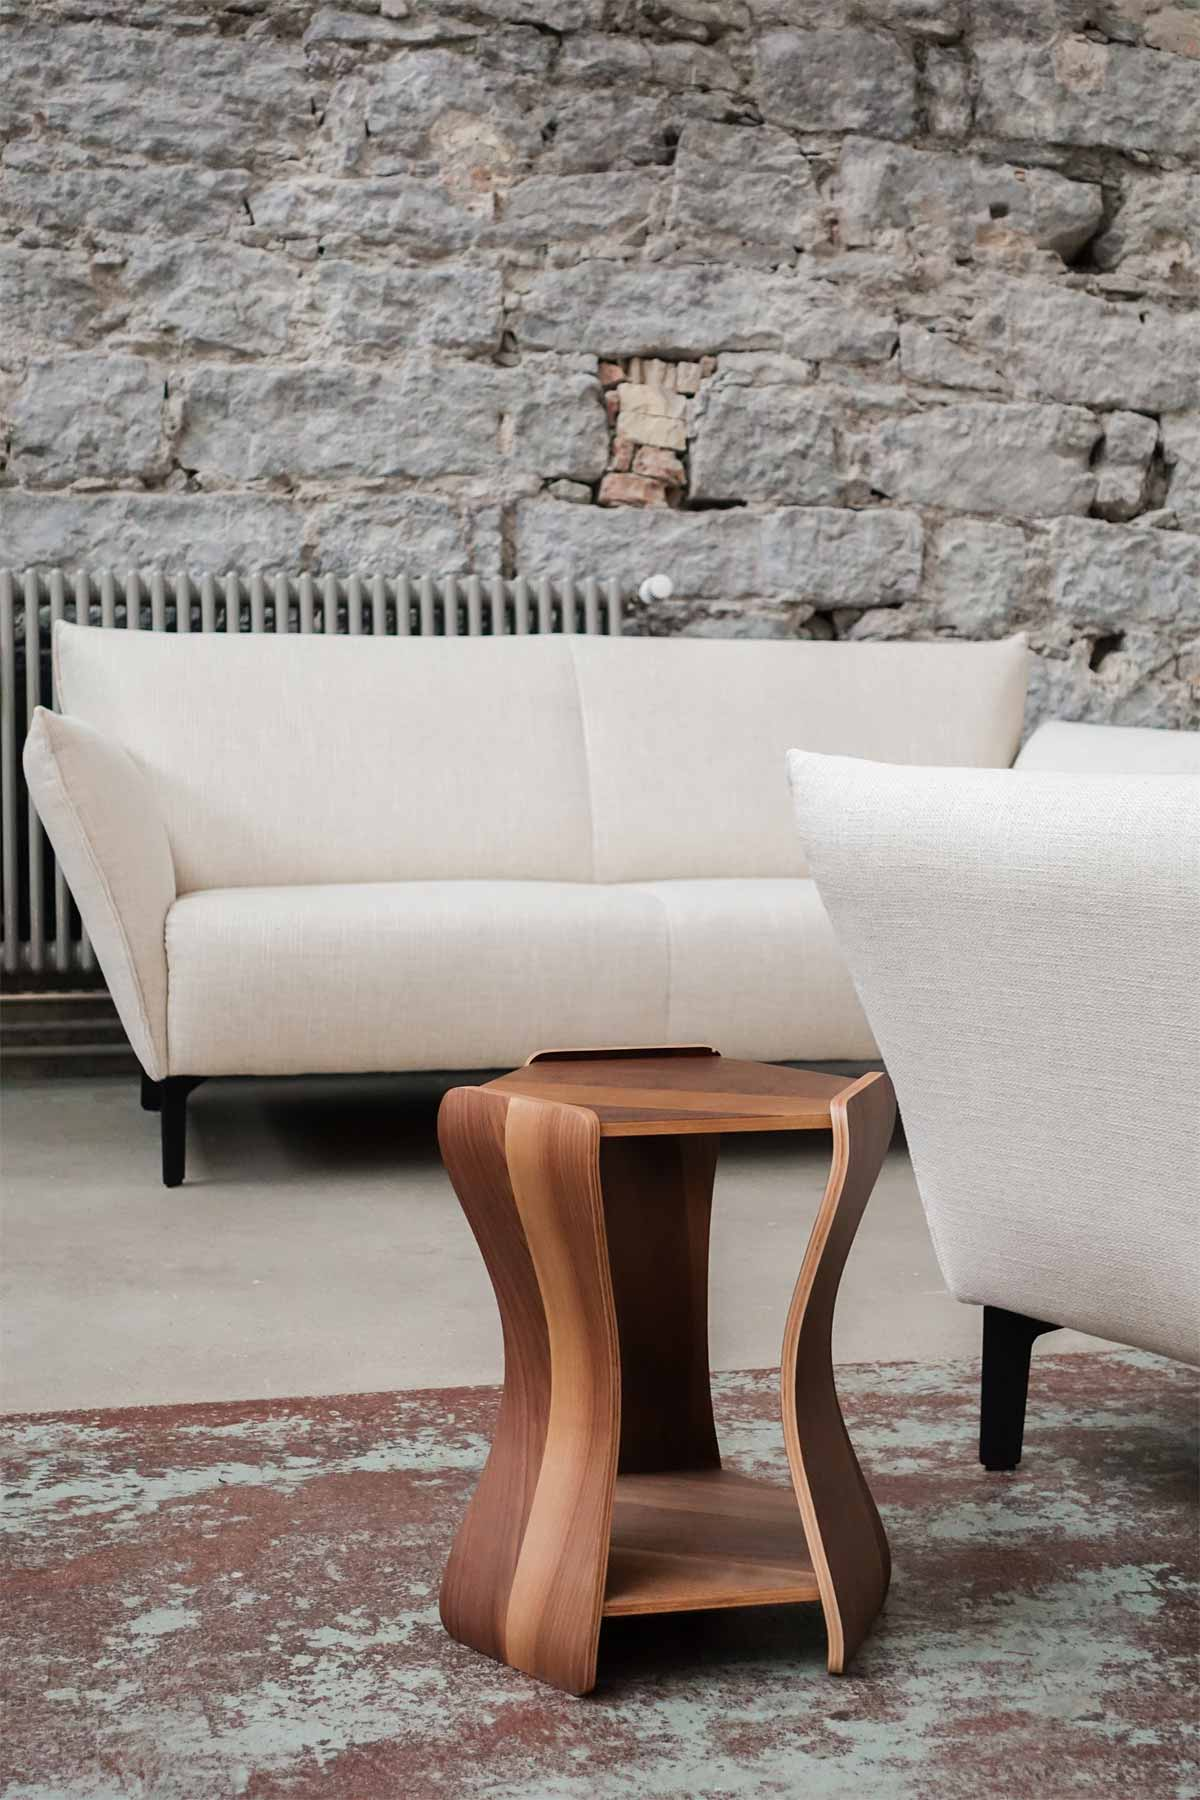 Atelier Pfister wooden stool in front of creme couch and natural stone wall